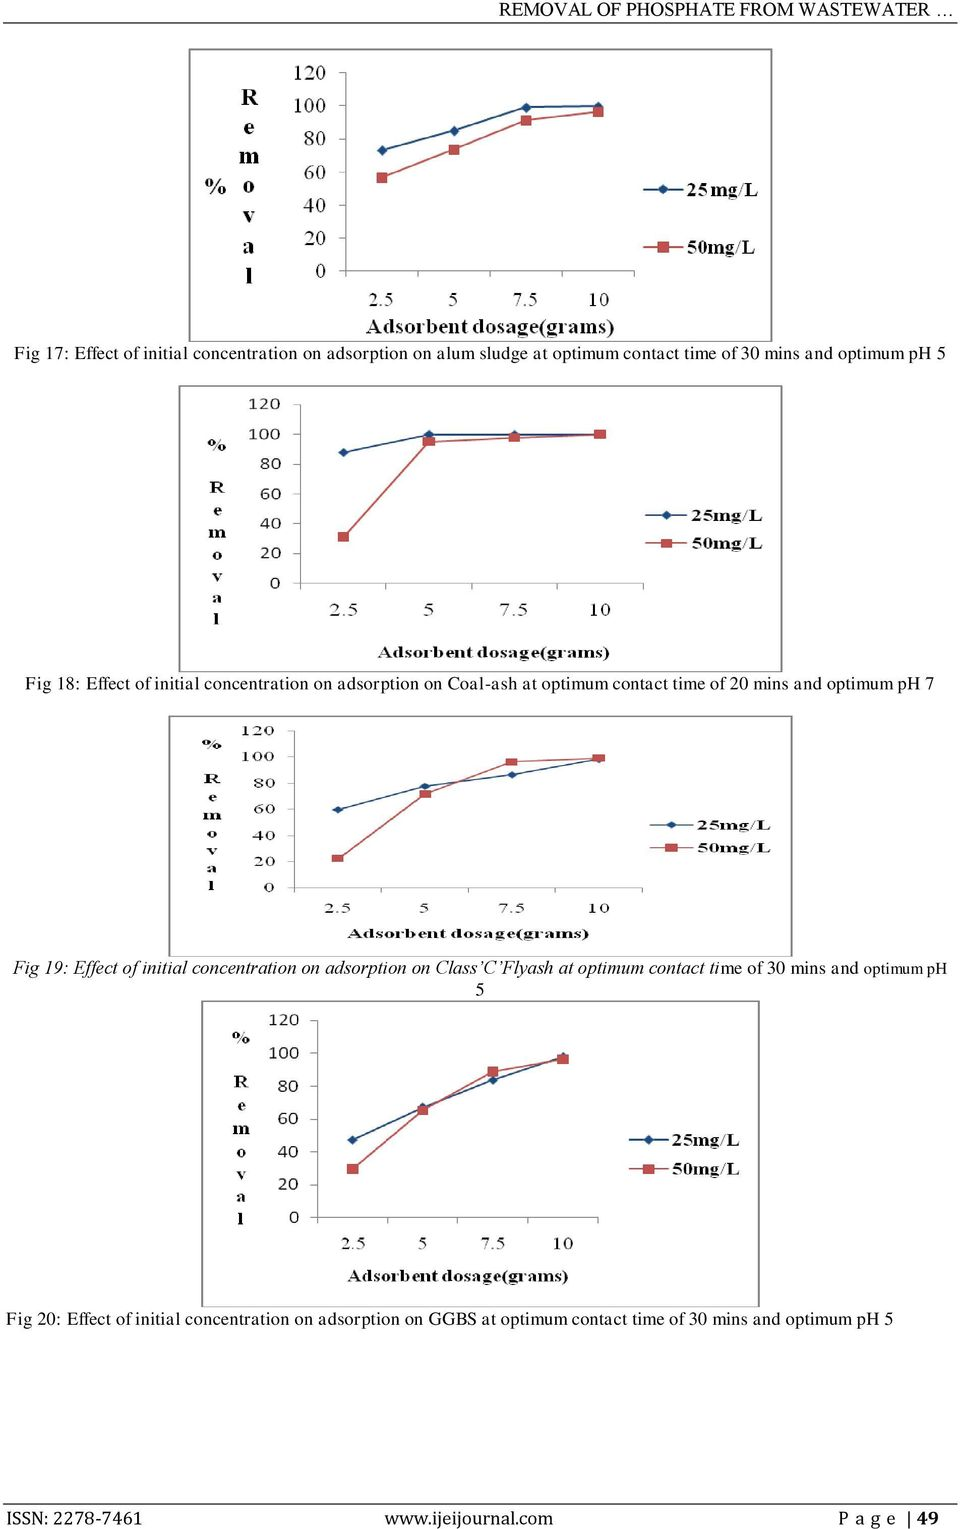 initial concentration on adsorption on Class C Flyash at optimum contact time of 30 mins and optimum ph 5 Fig 20: Effect of